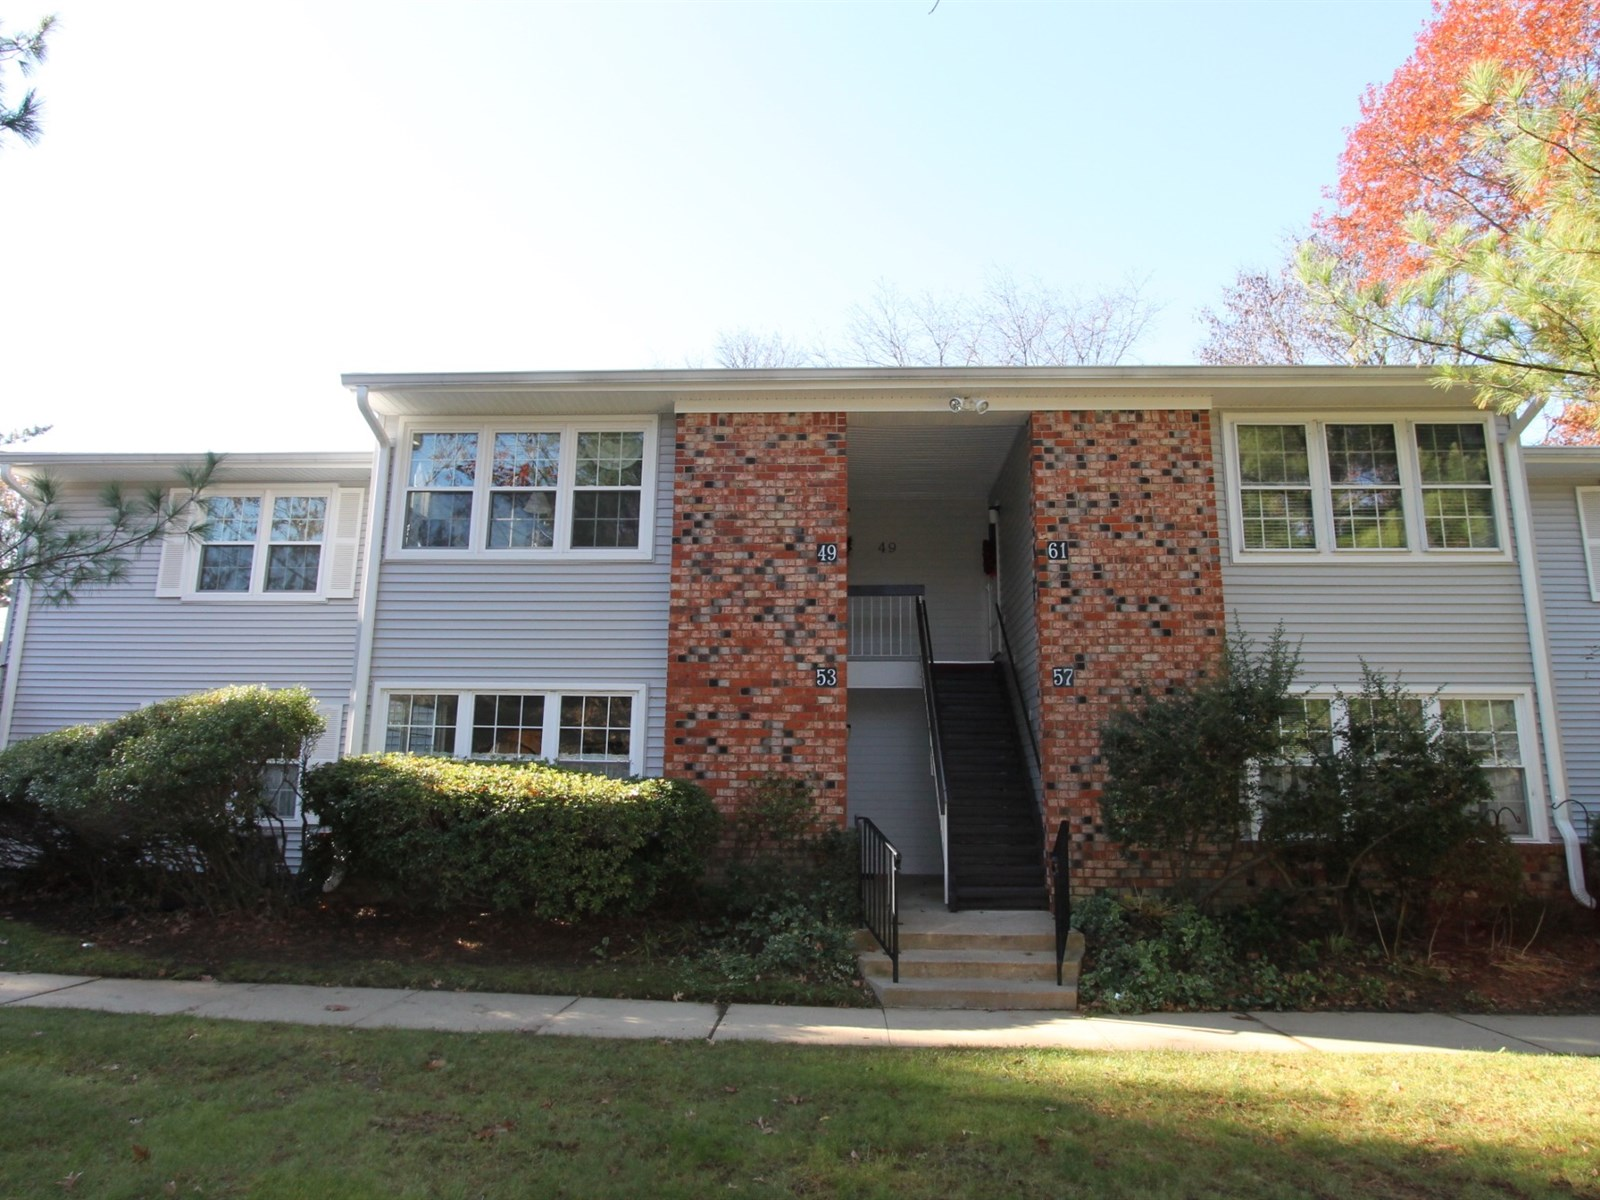 53 Honeysuckle Ln, Red Bank, NJ 07701